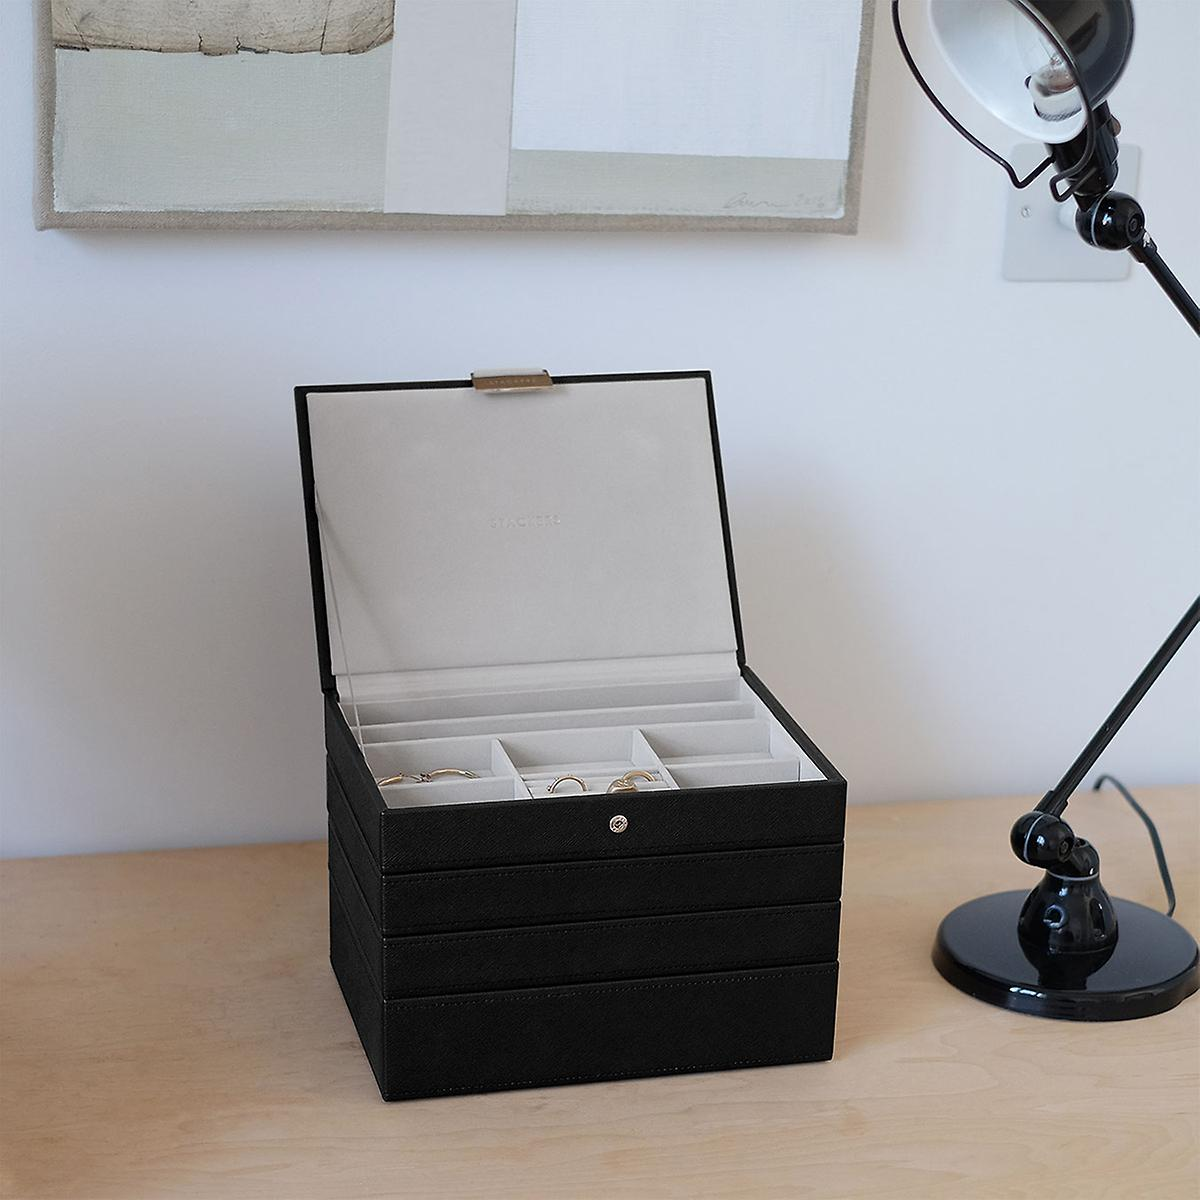 Stackers Black Classic Premium Stackable Jewelry Box